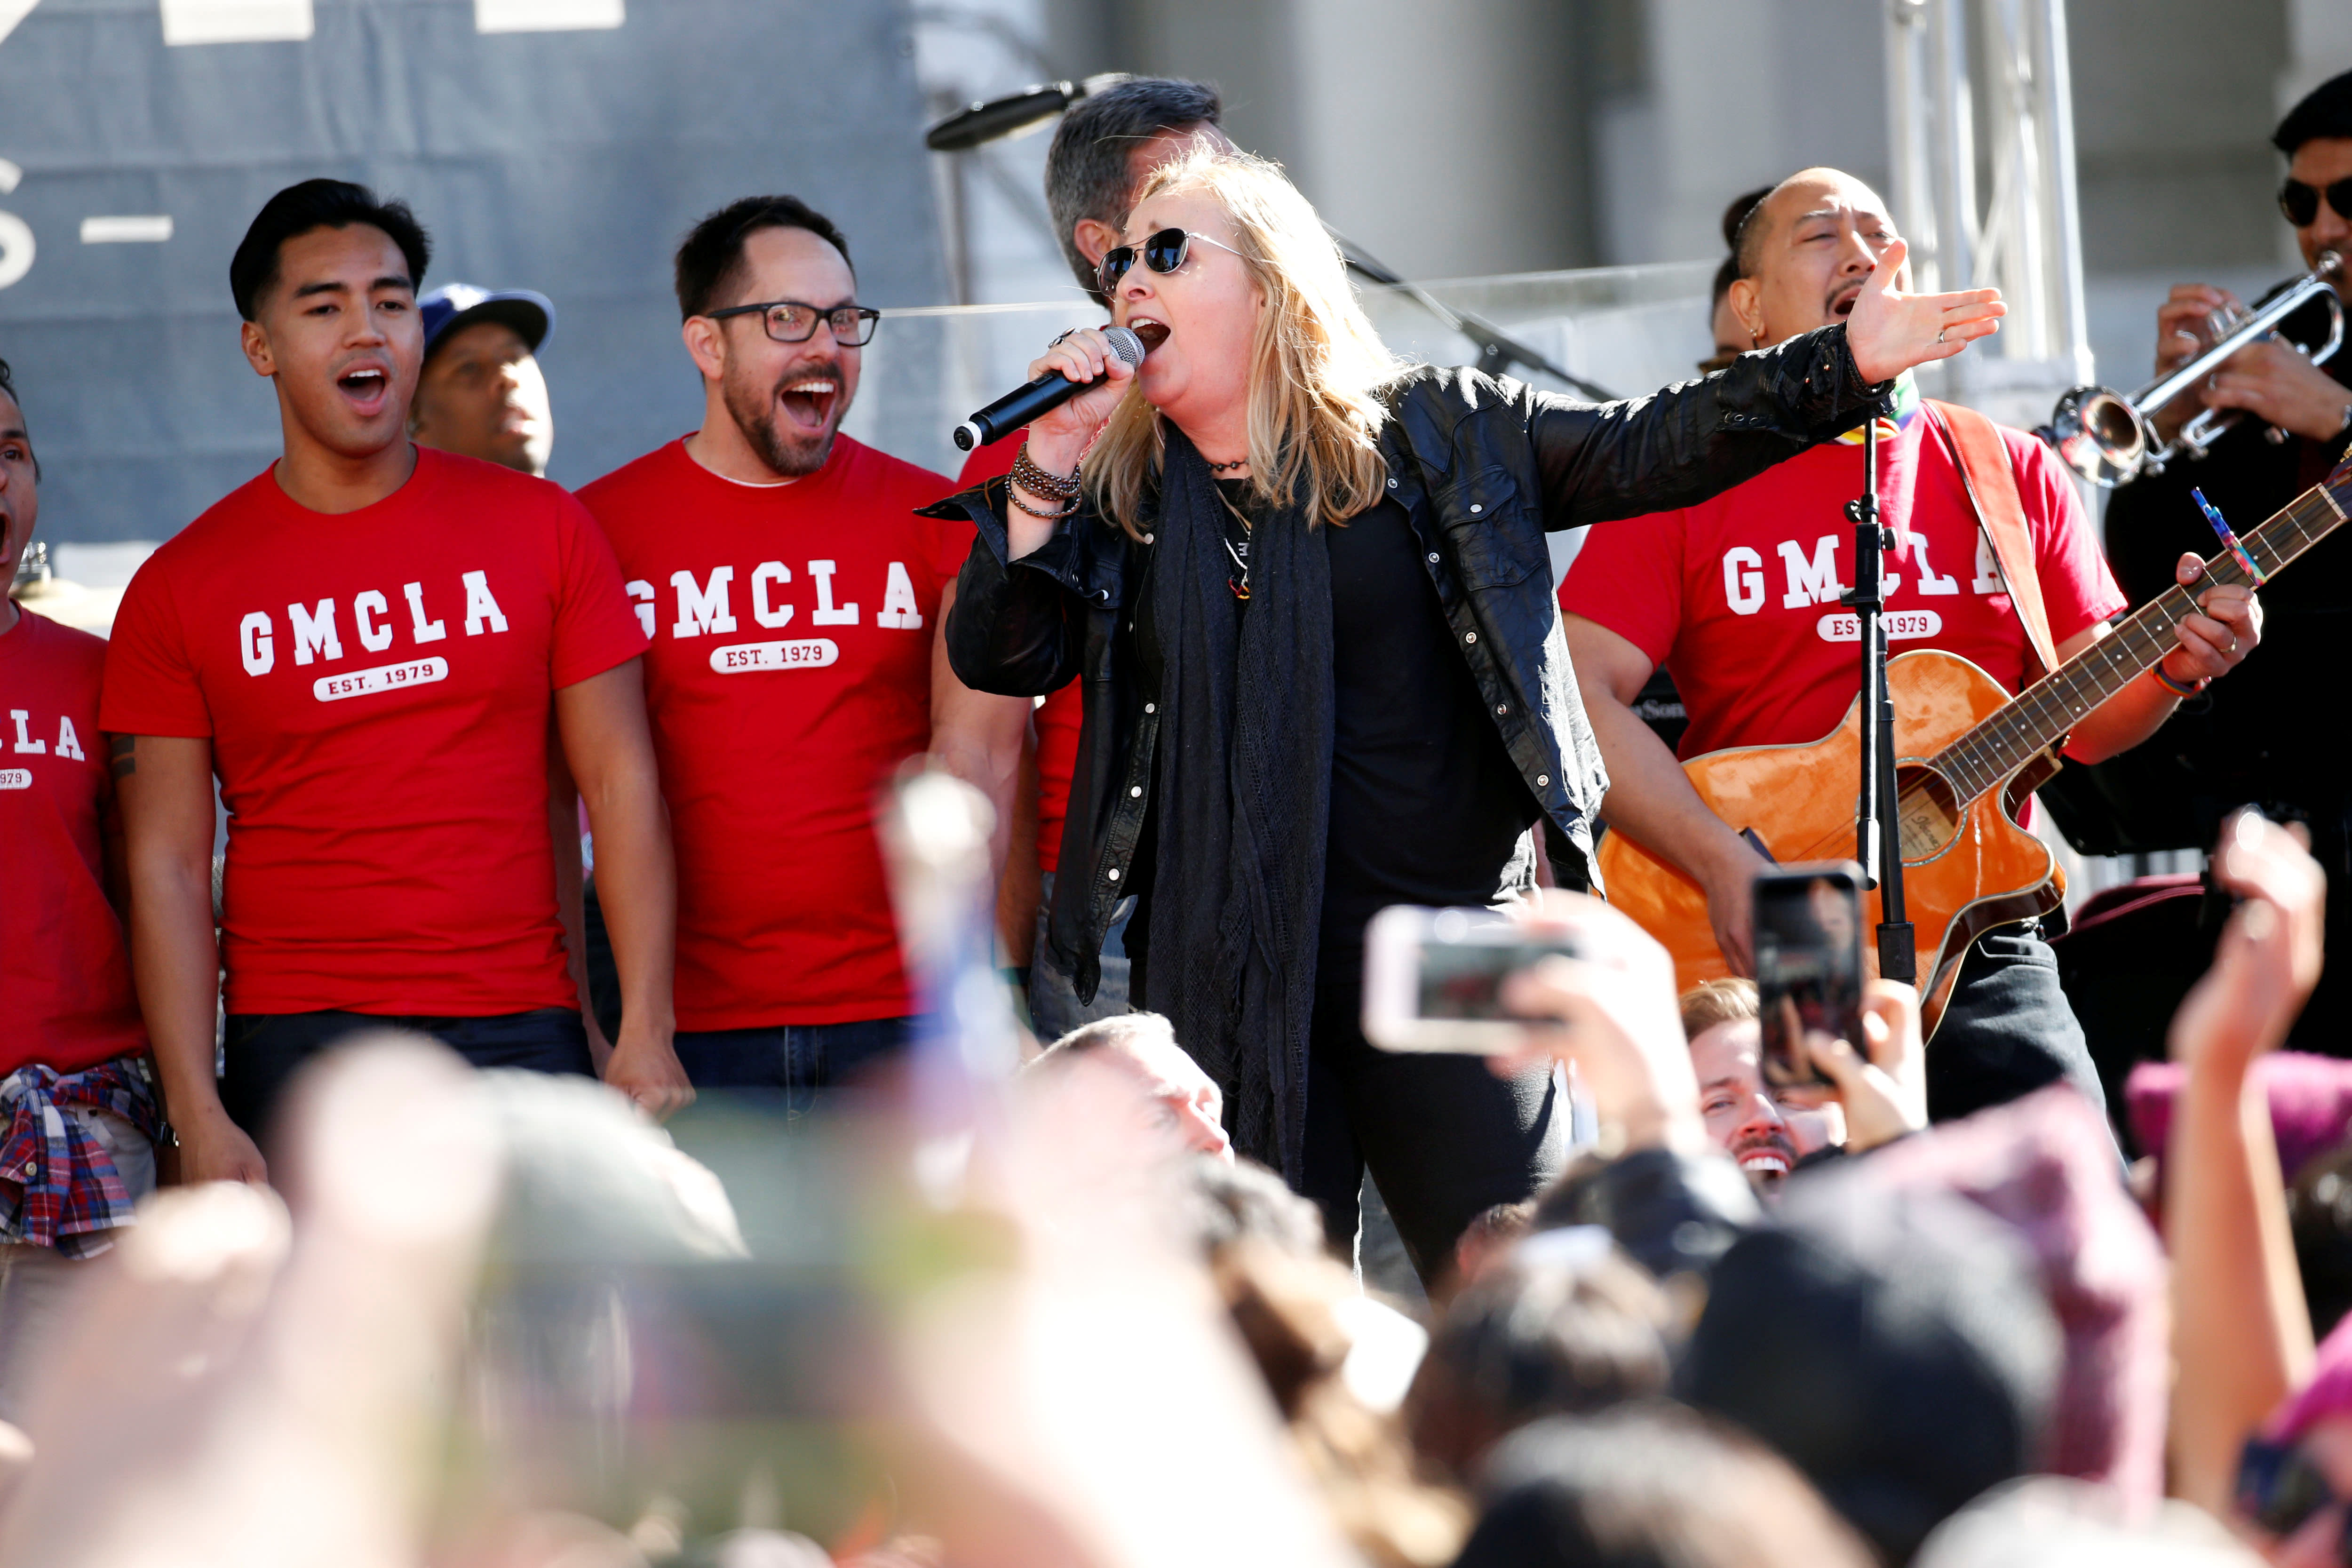 Melissa Etheridge performs with The Gay Men's Chorus of Los Angeles at the second annual Women's March in LA (REUTERS/Patrick T. Fallon)